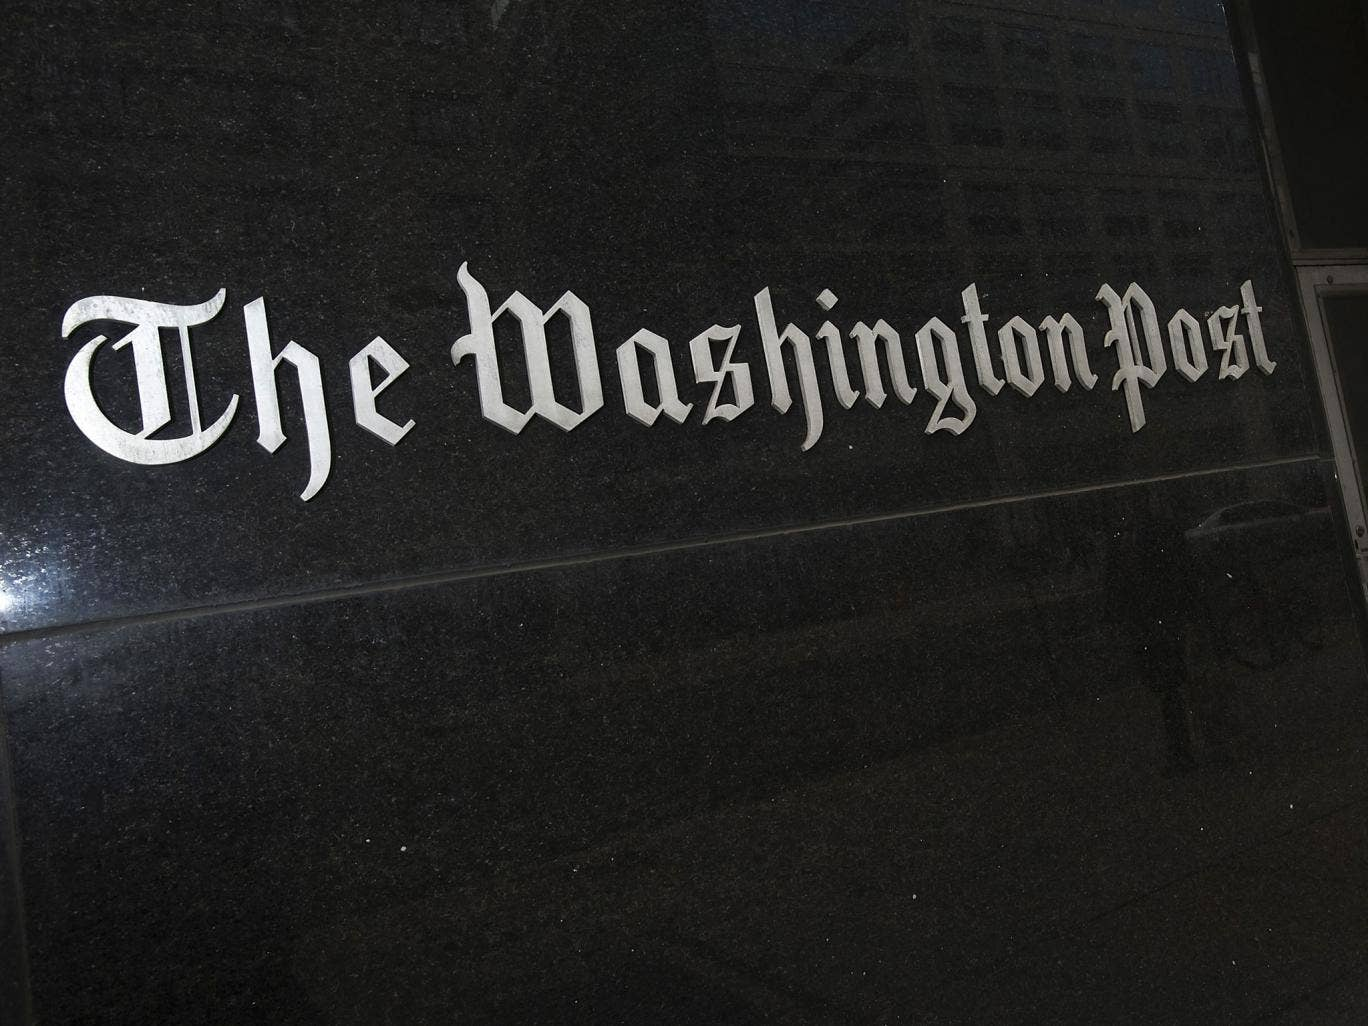 The Washington Post has been sold to Jeffrey Bezos for $250m